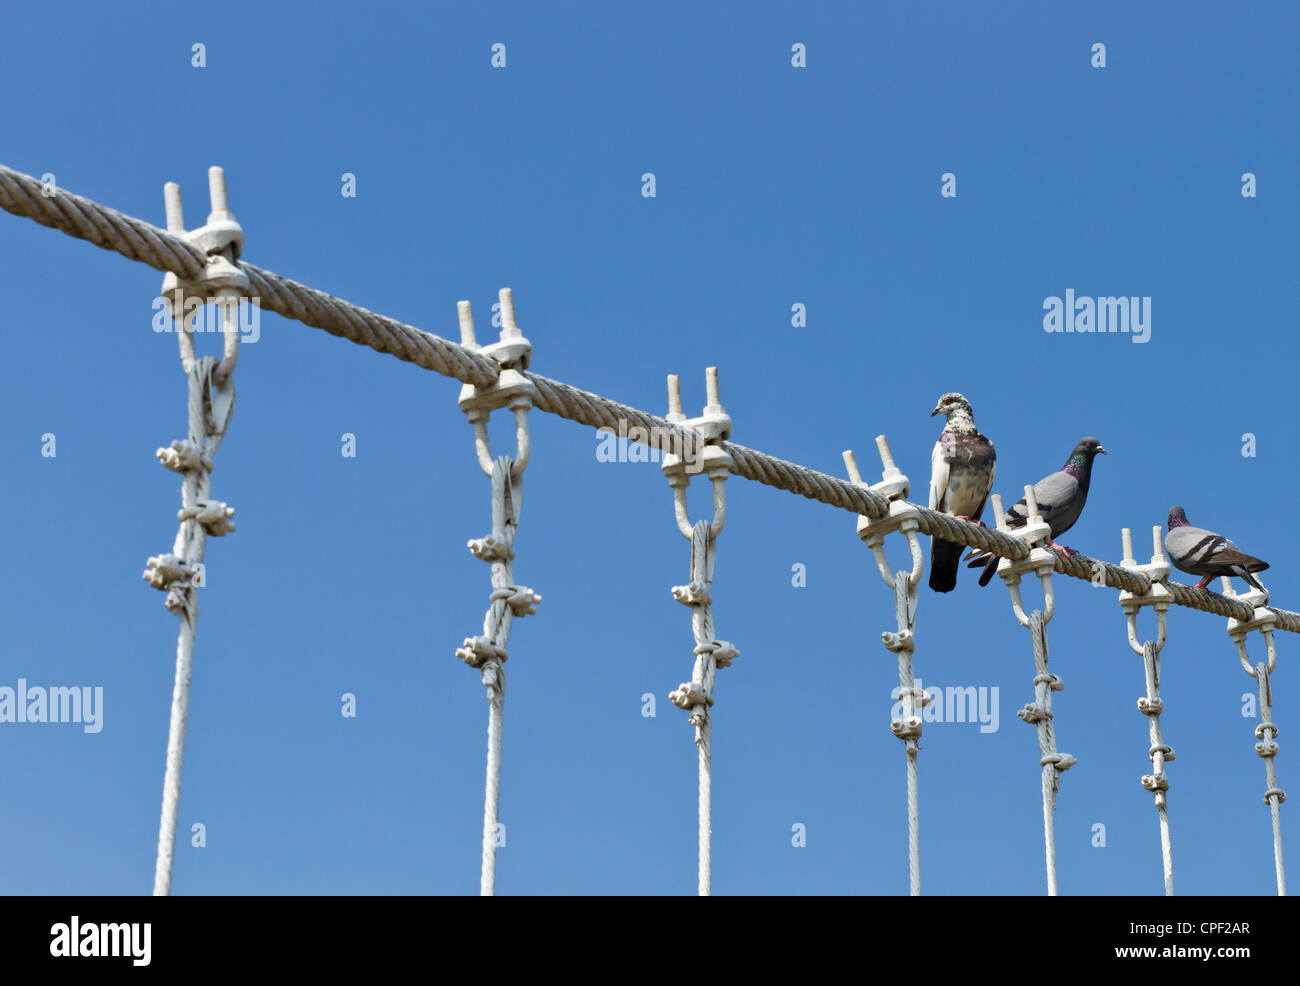 Pigeons on white sling - Stock Image